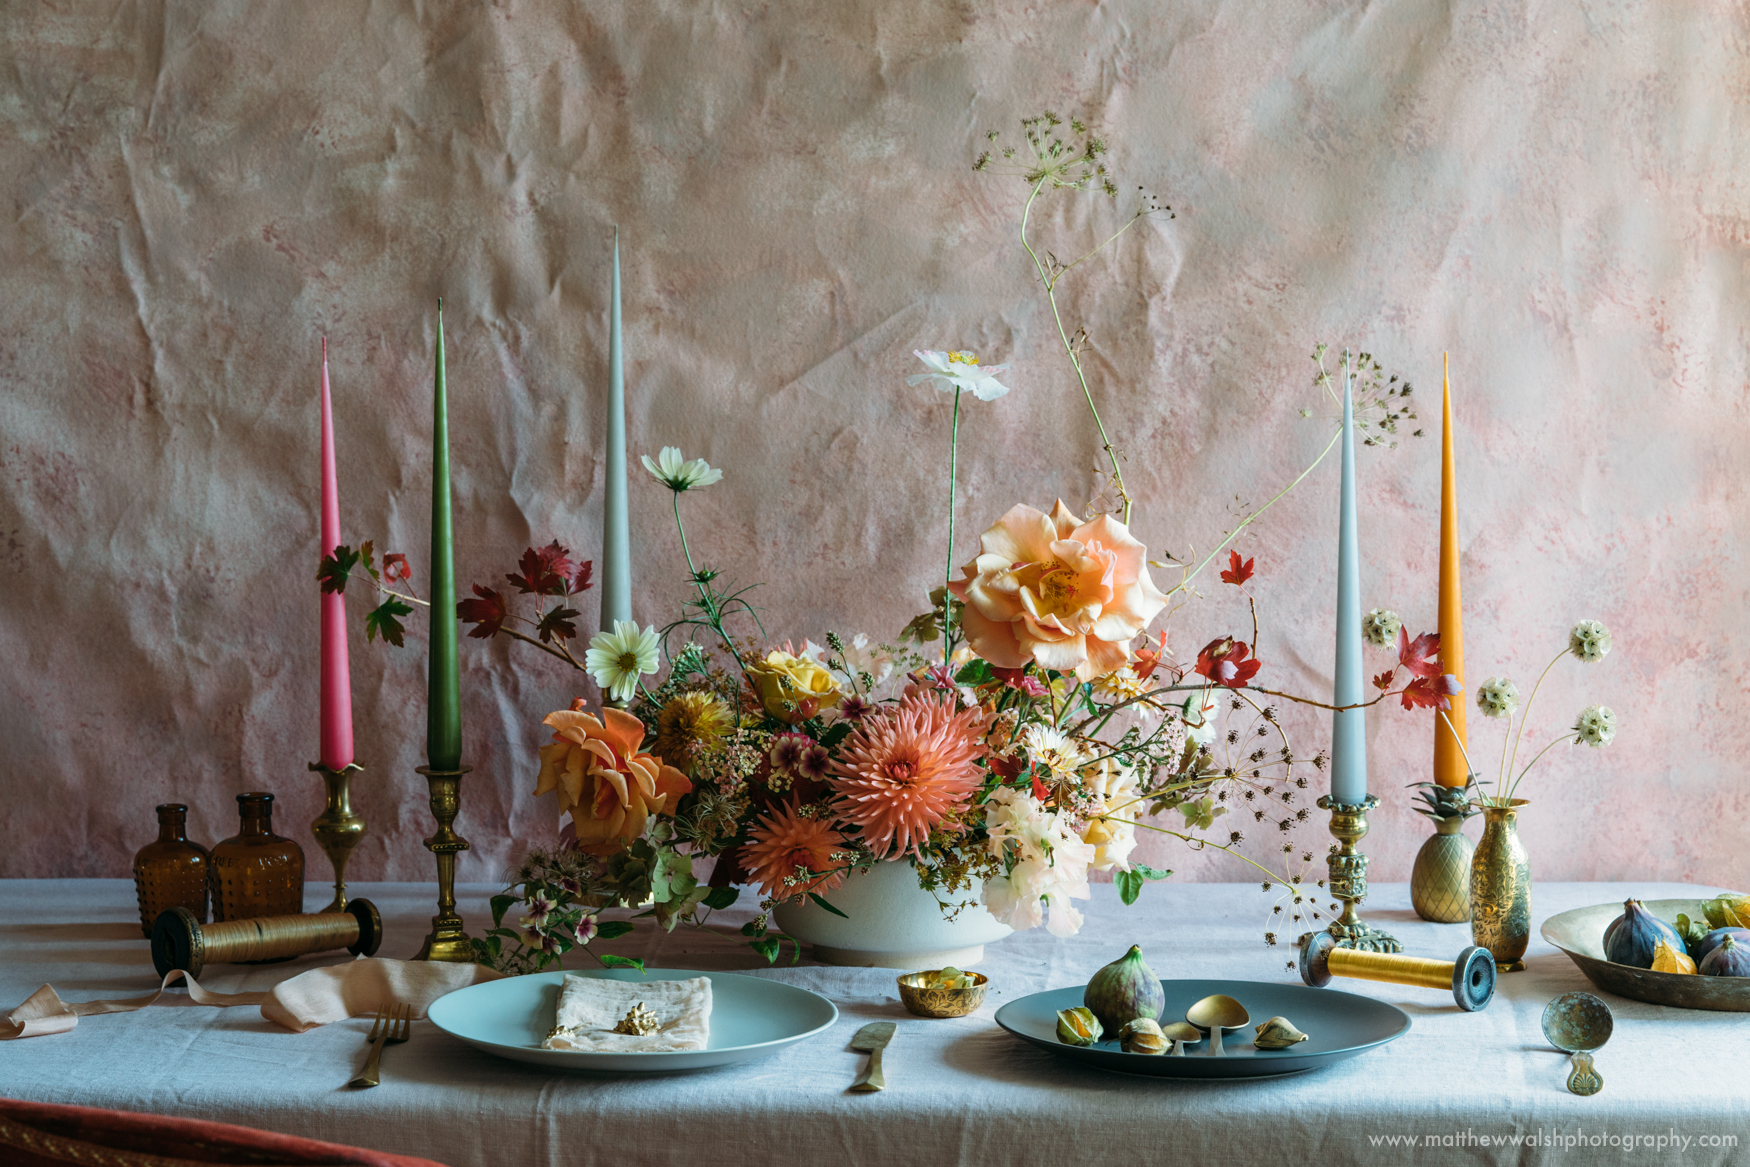 The wonderful natural light pouring through a window to perfectly light this still life display